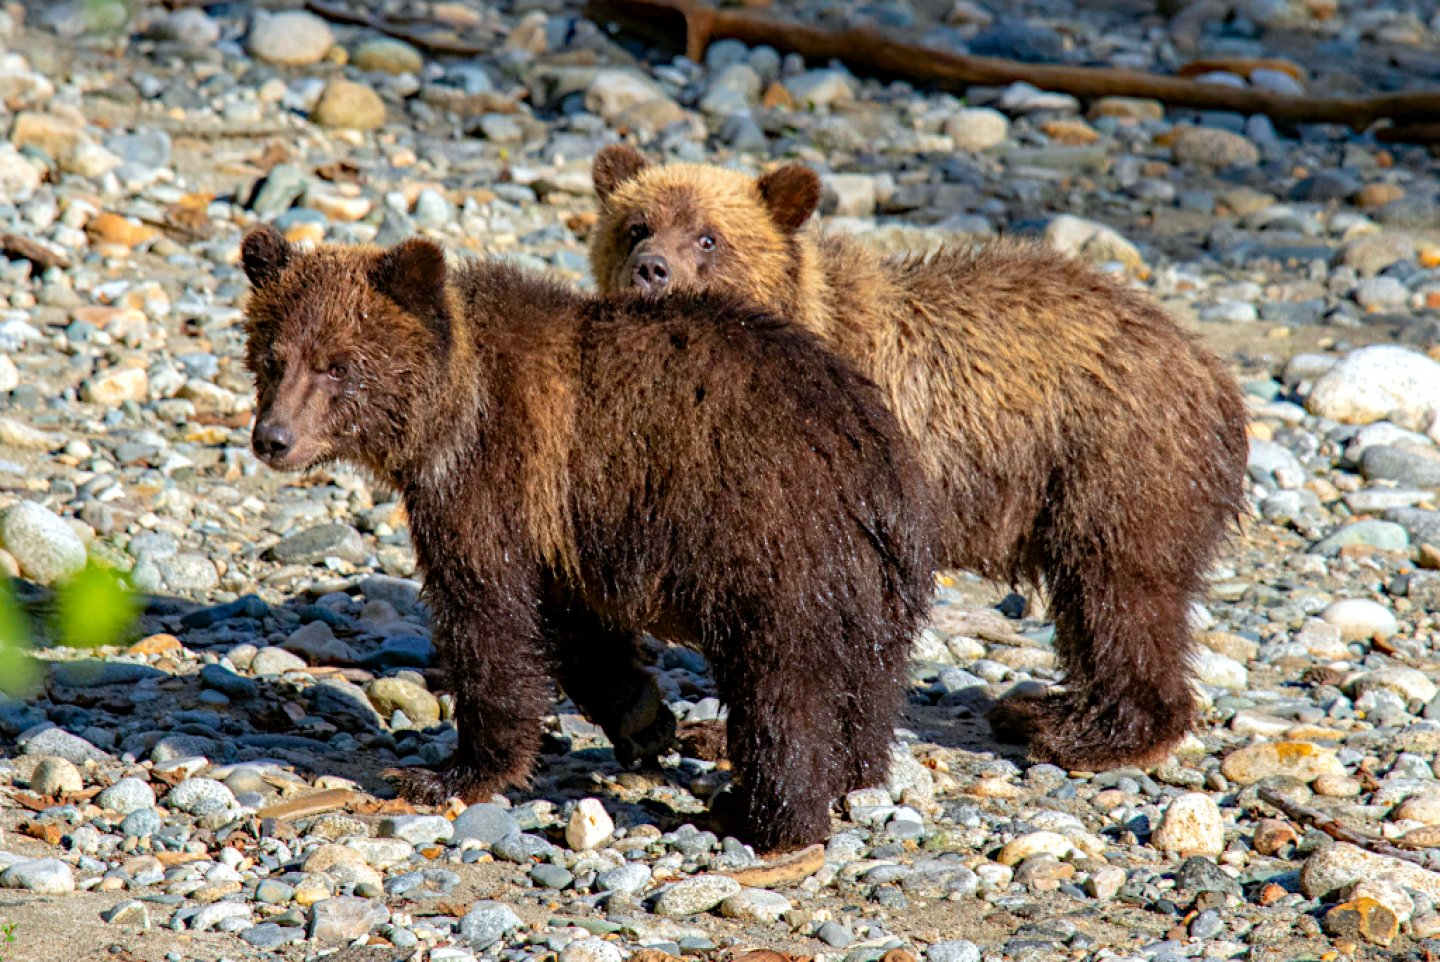 Grizzly bear cubs courtesy of HWCT guest François Haffner